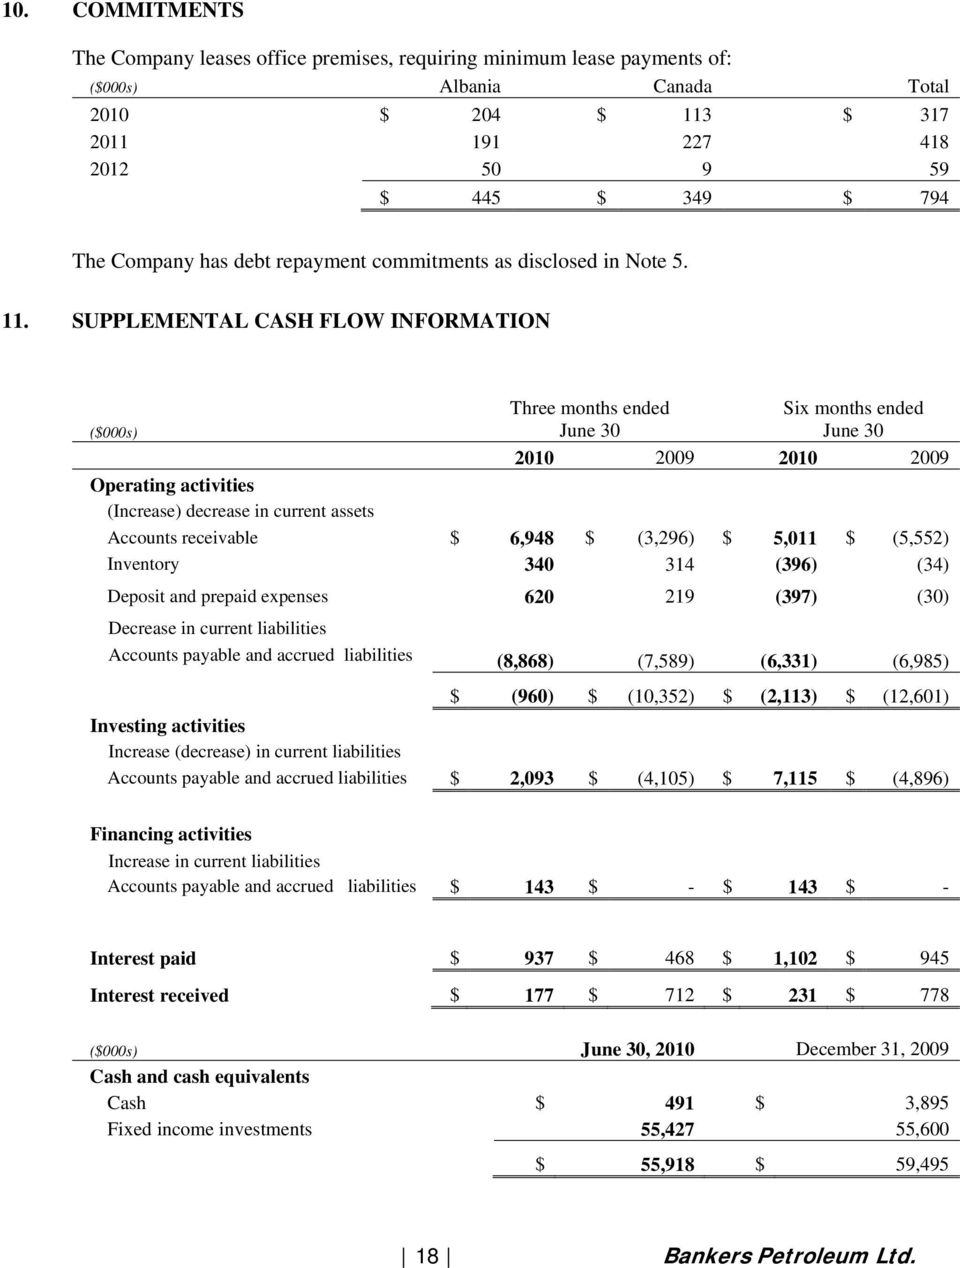 SUPPLEMENTAL CASH FLOW INFORMATION ($000s) Three months ended June 30 Six months ended June 30 2010 2009 2010 2009 Operating activities (Increase) decrease in current assets Accounts receivable $